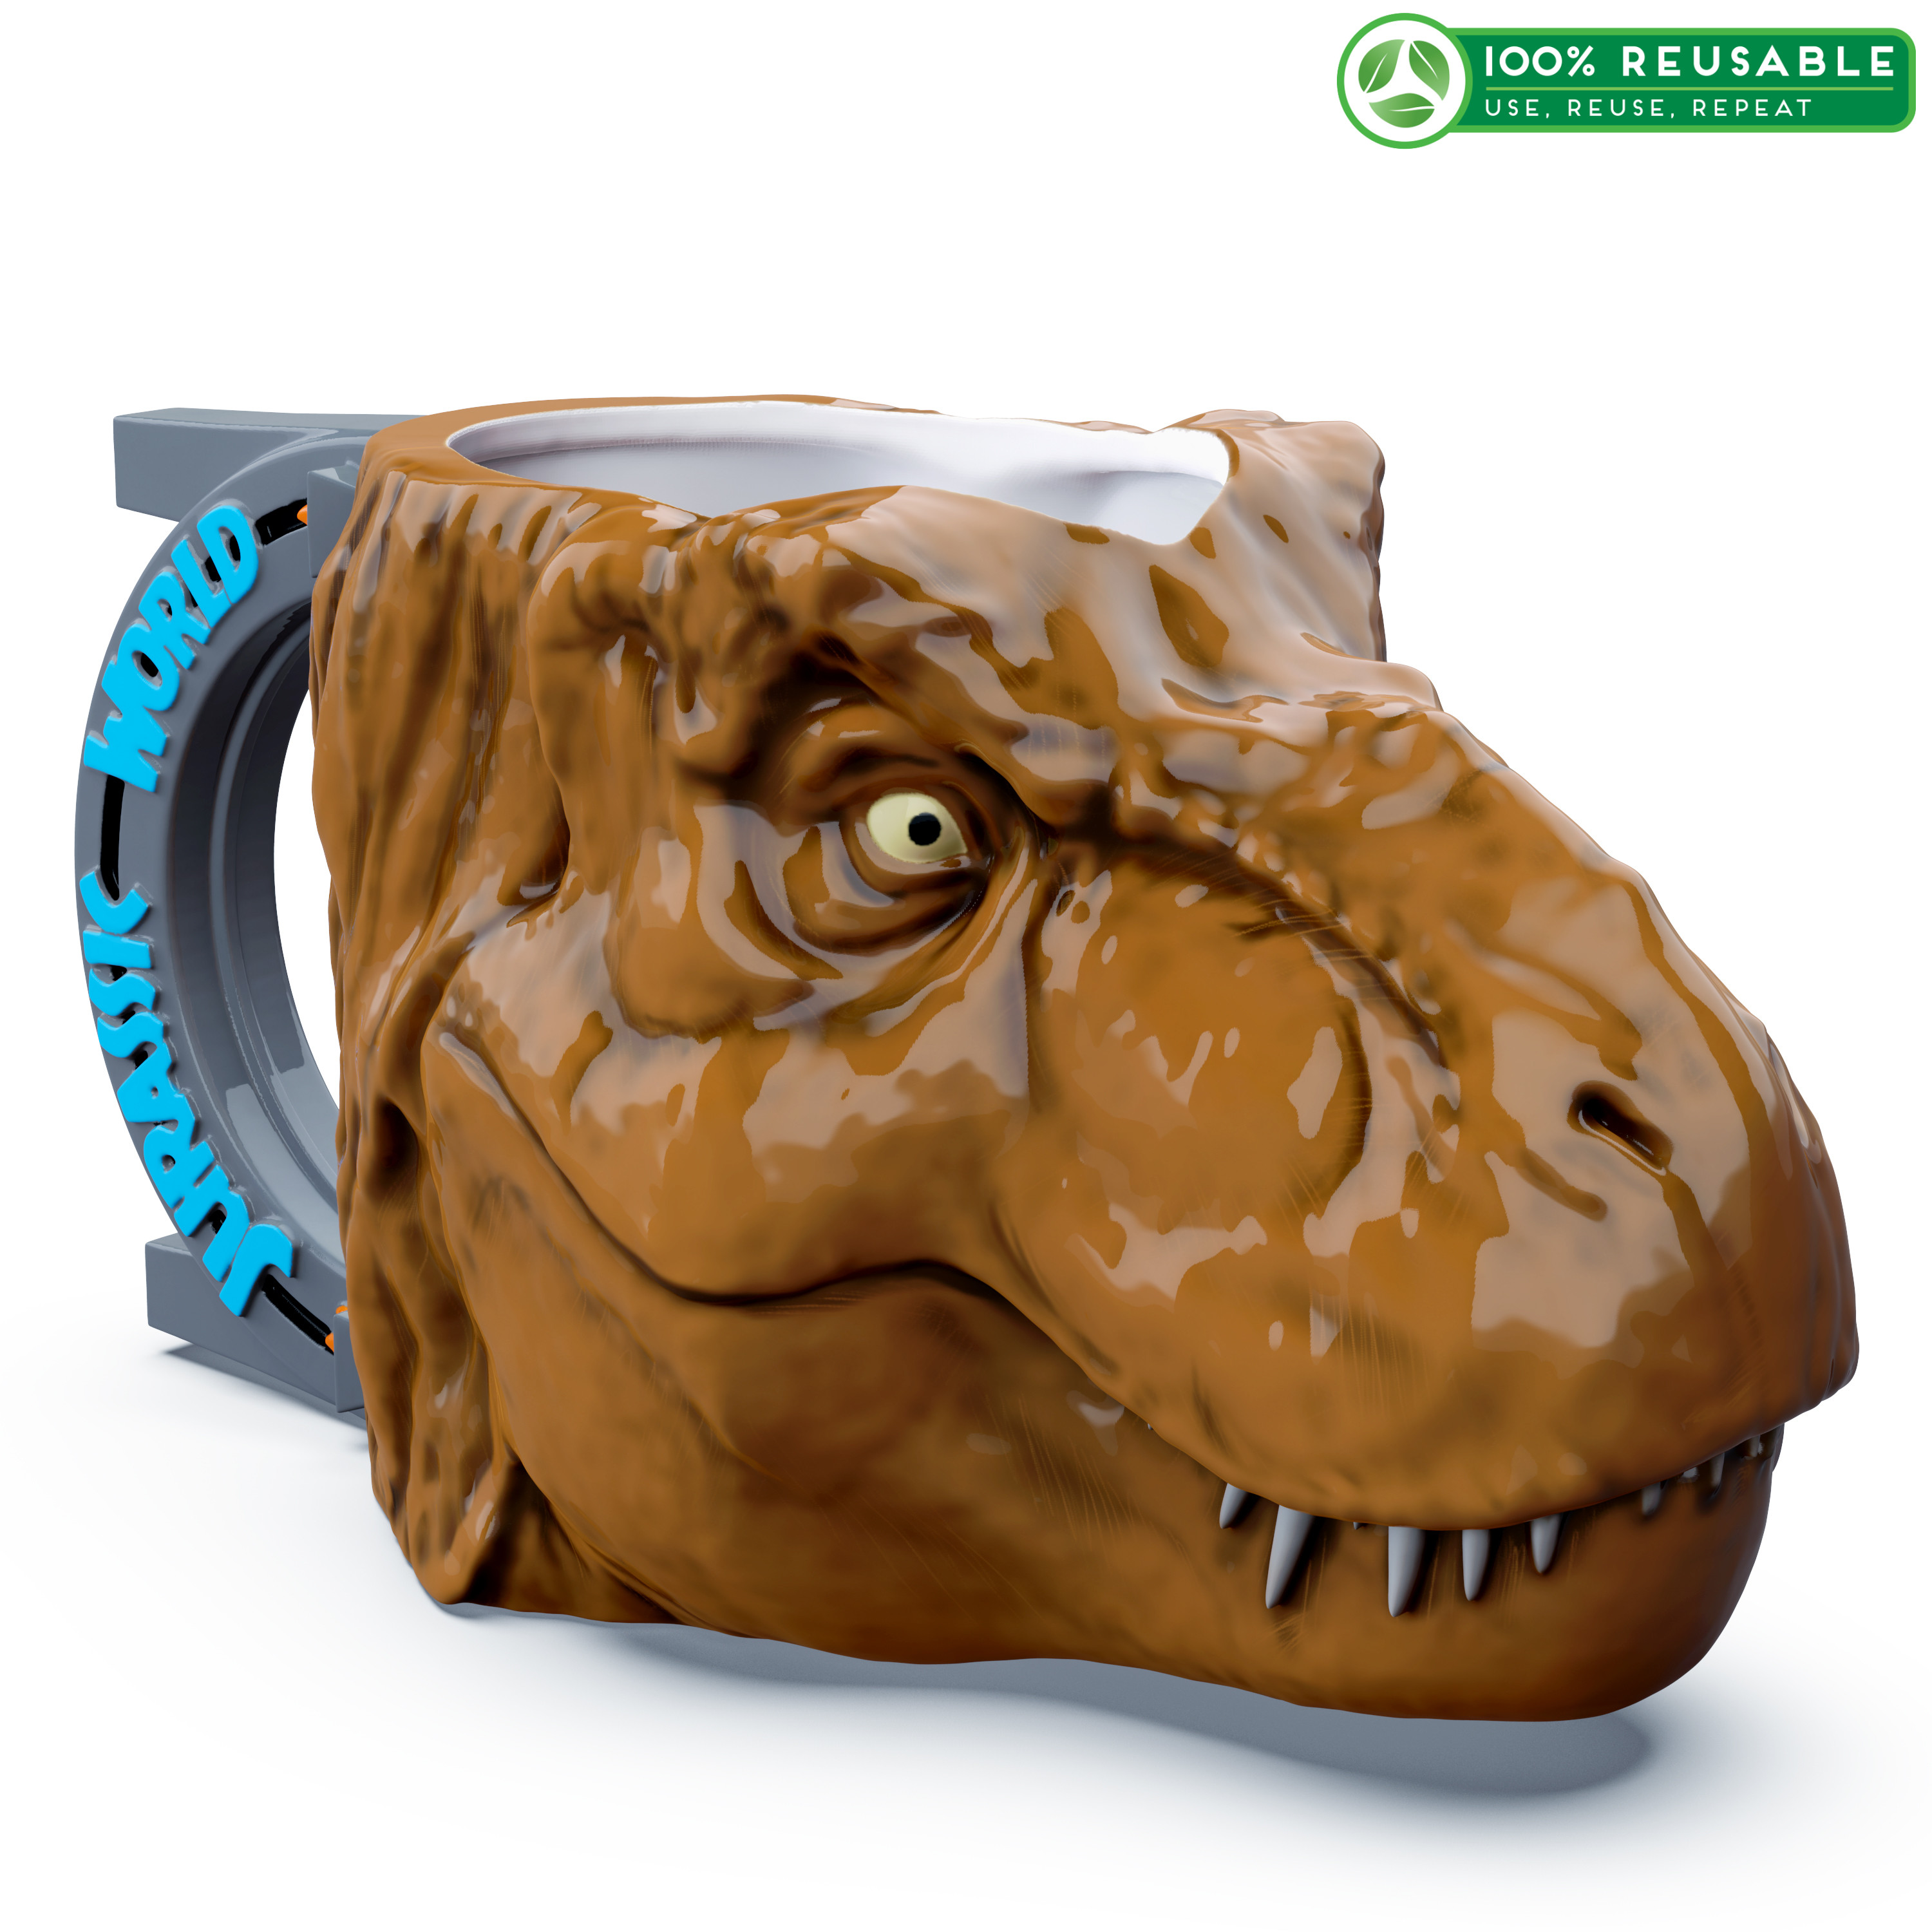 Jurassic World 2 11 ounce Coffee Mug, T-Rex slideshow image 1